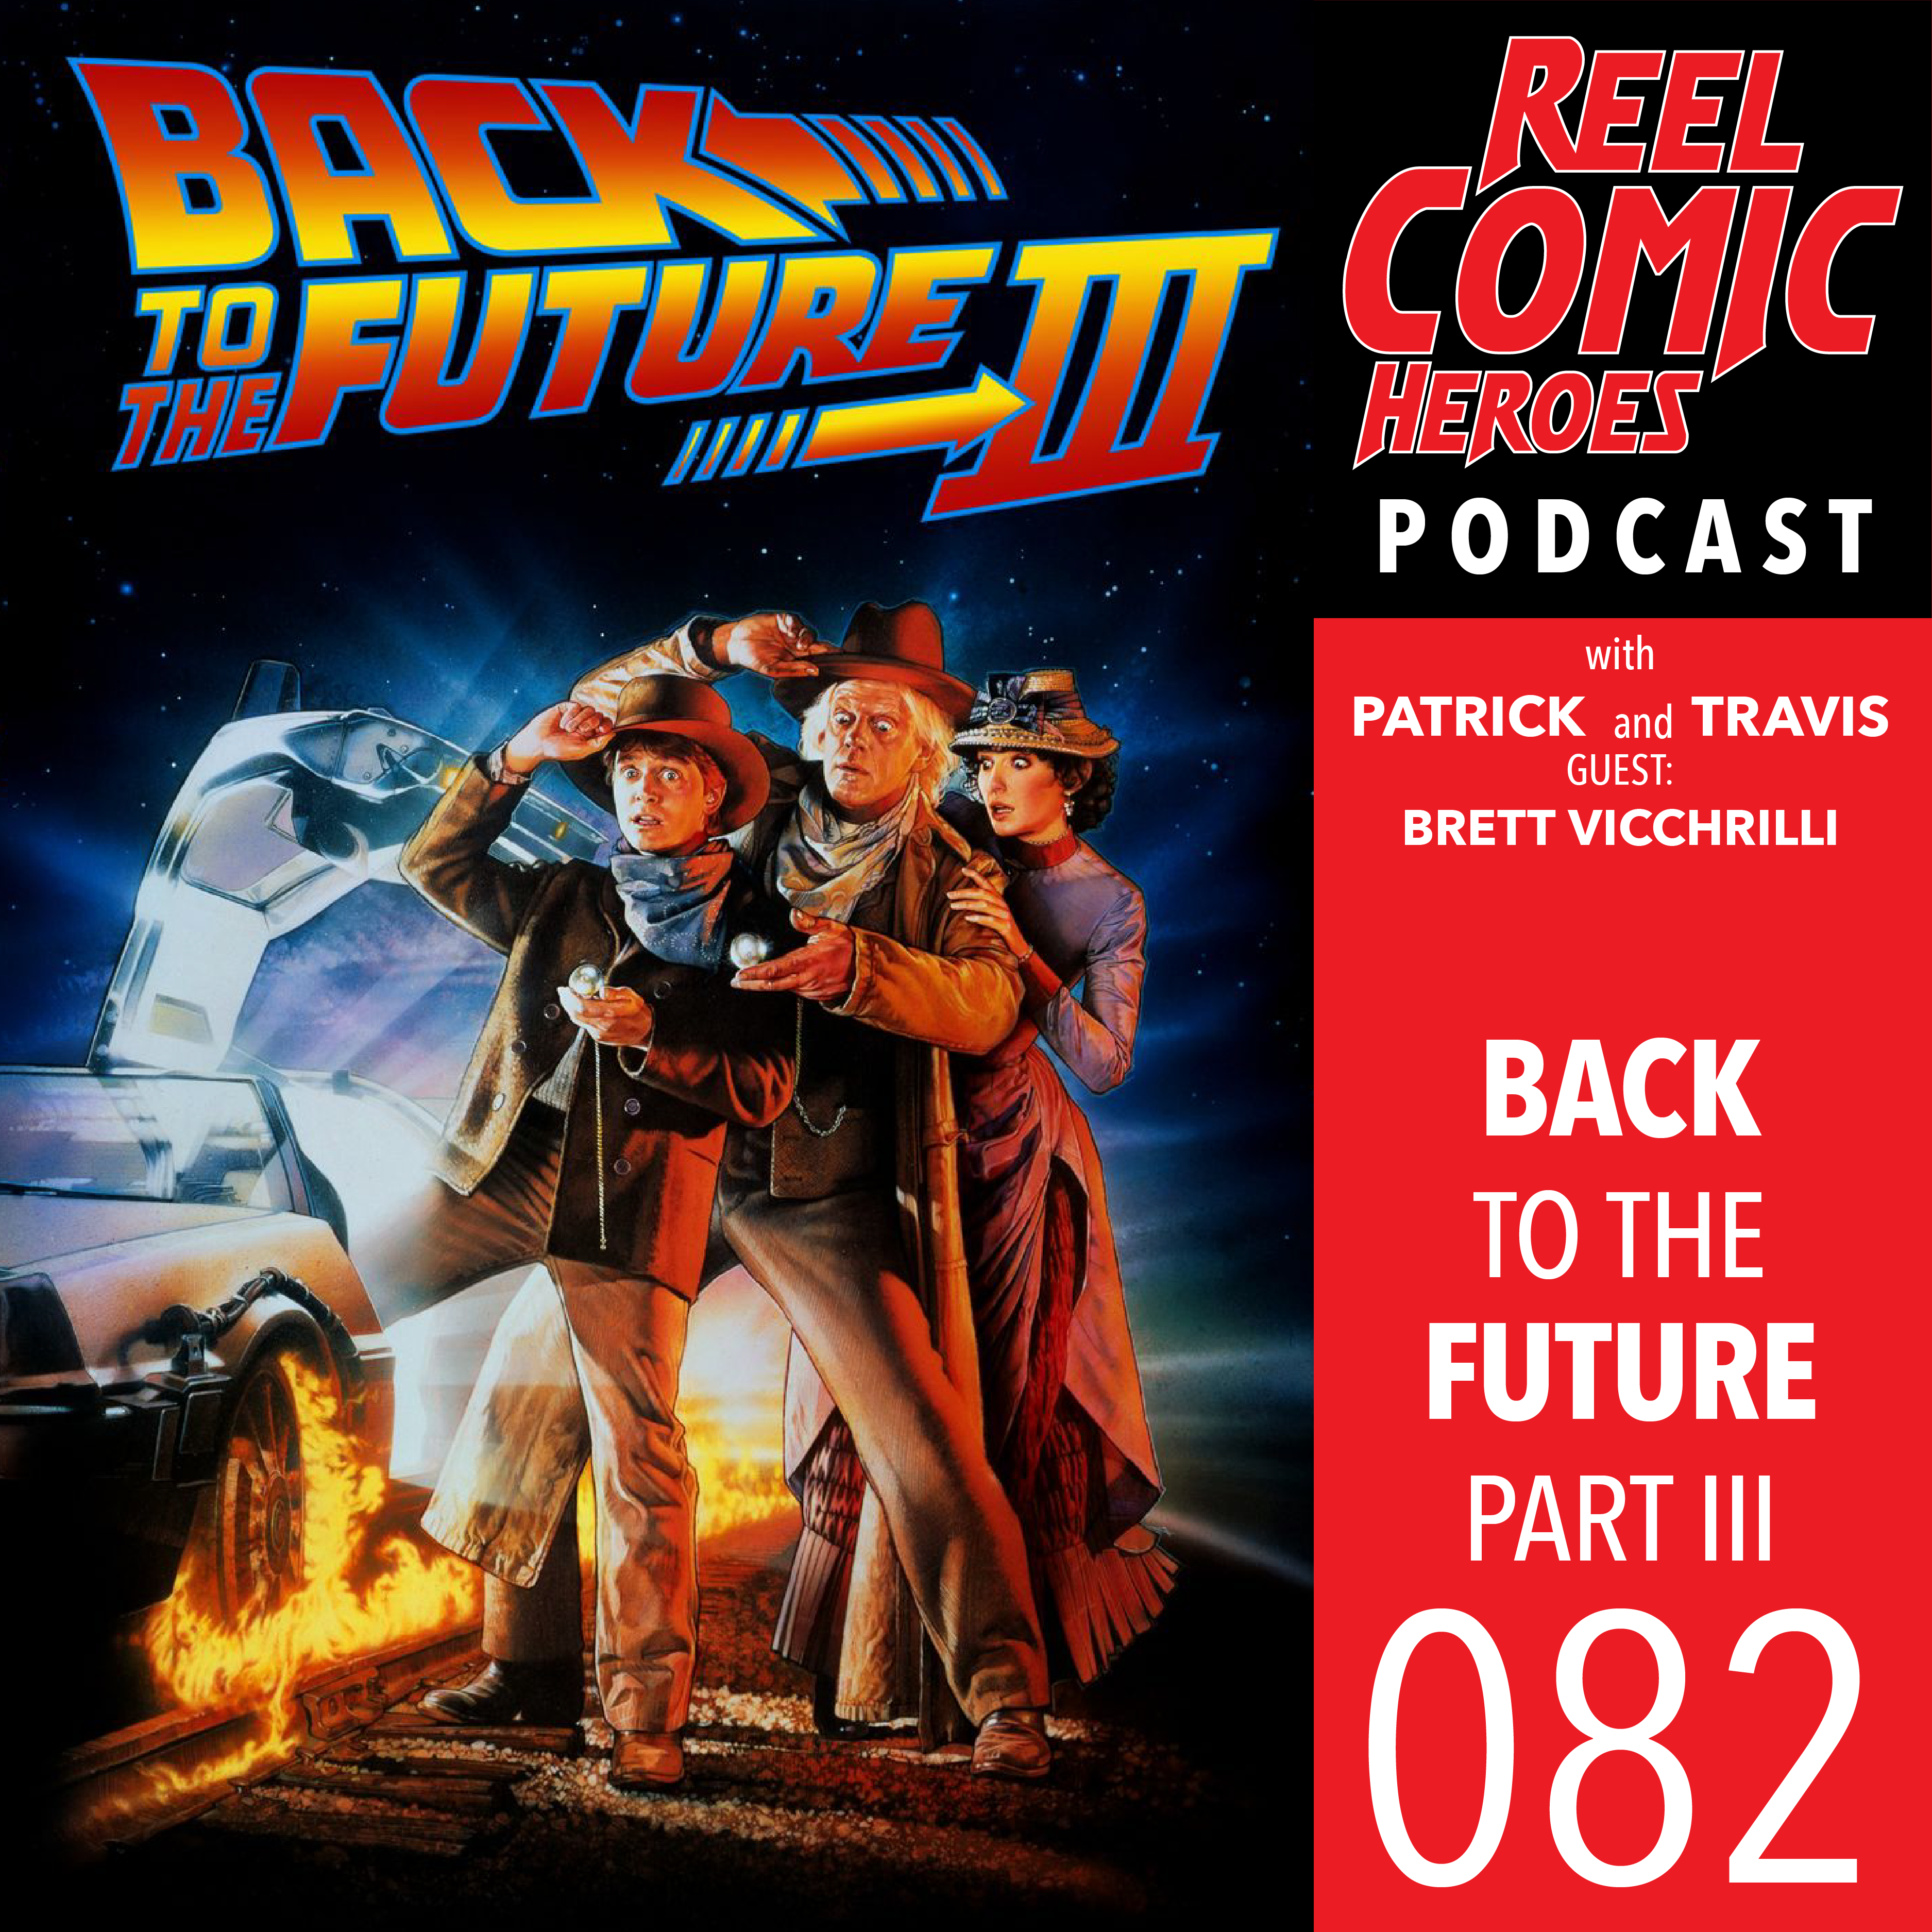 Artwork for 082 - Back to the Future Part III with Brett Vicchrilli